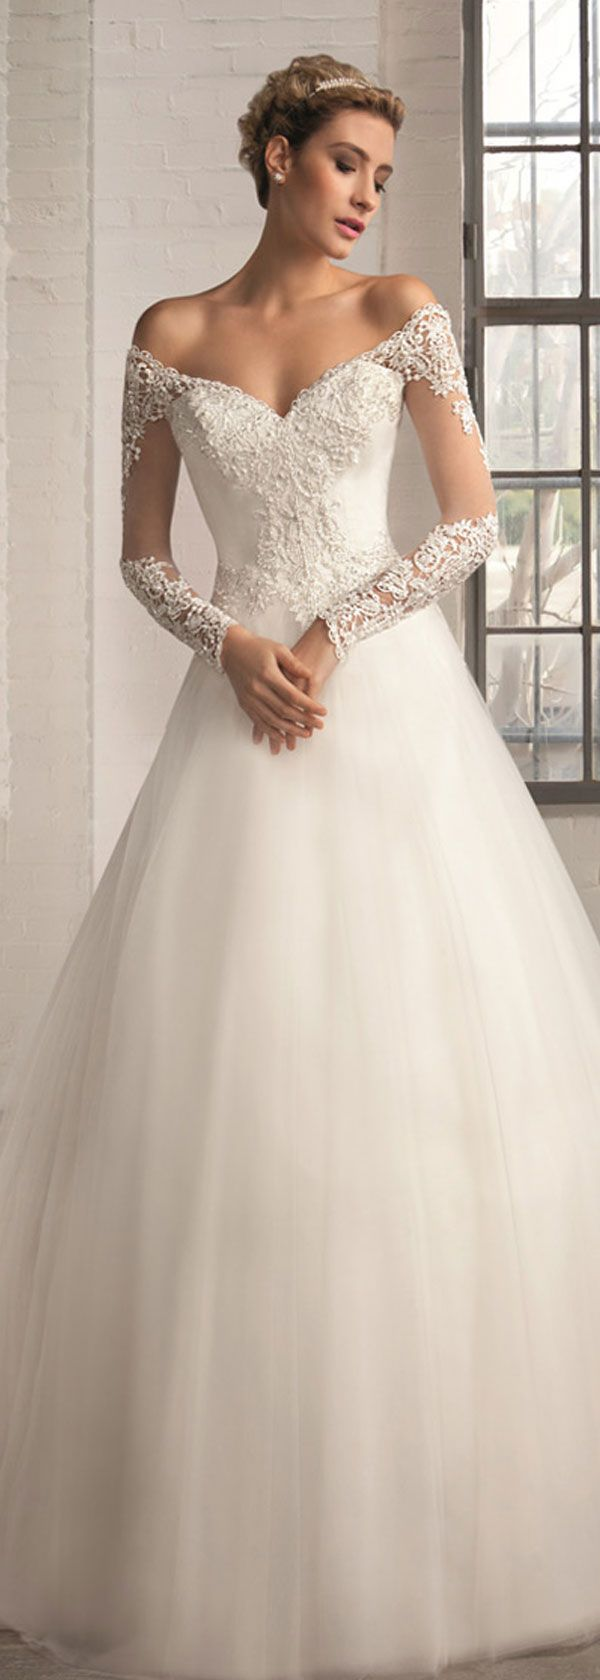 Elegant tulle offtheshoulder neckline aline wedding dresses with